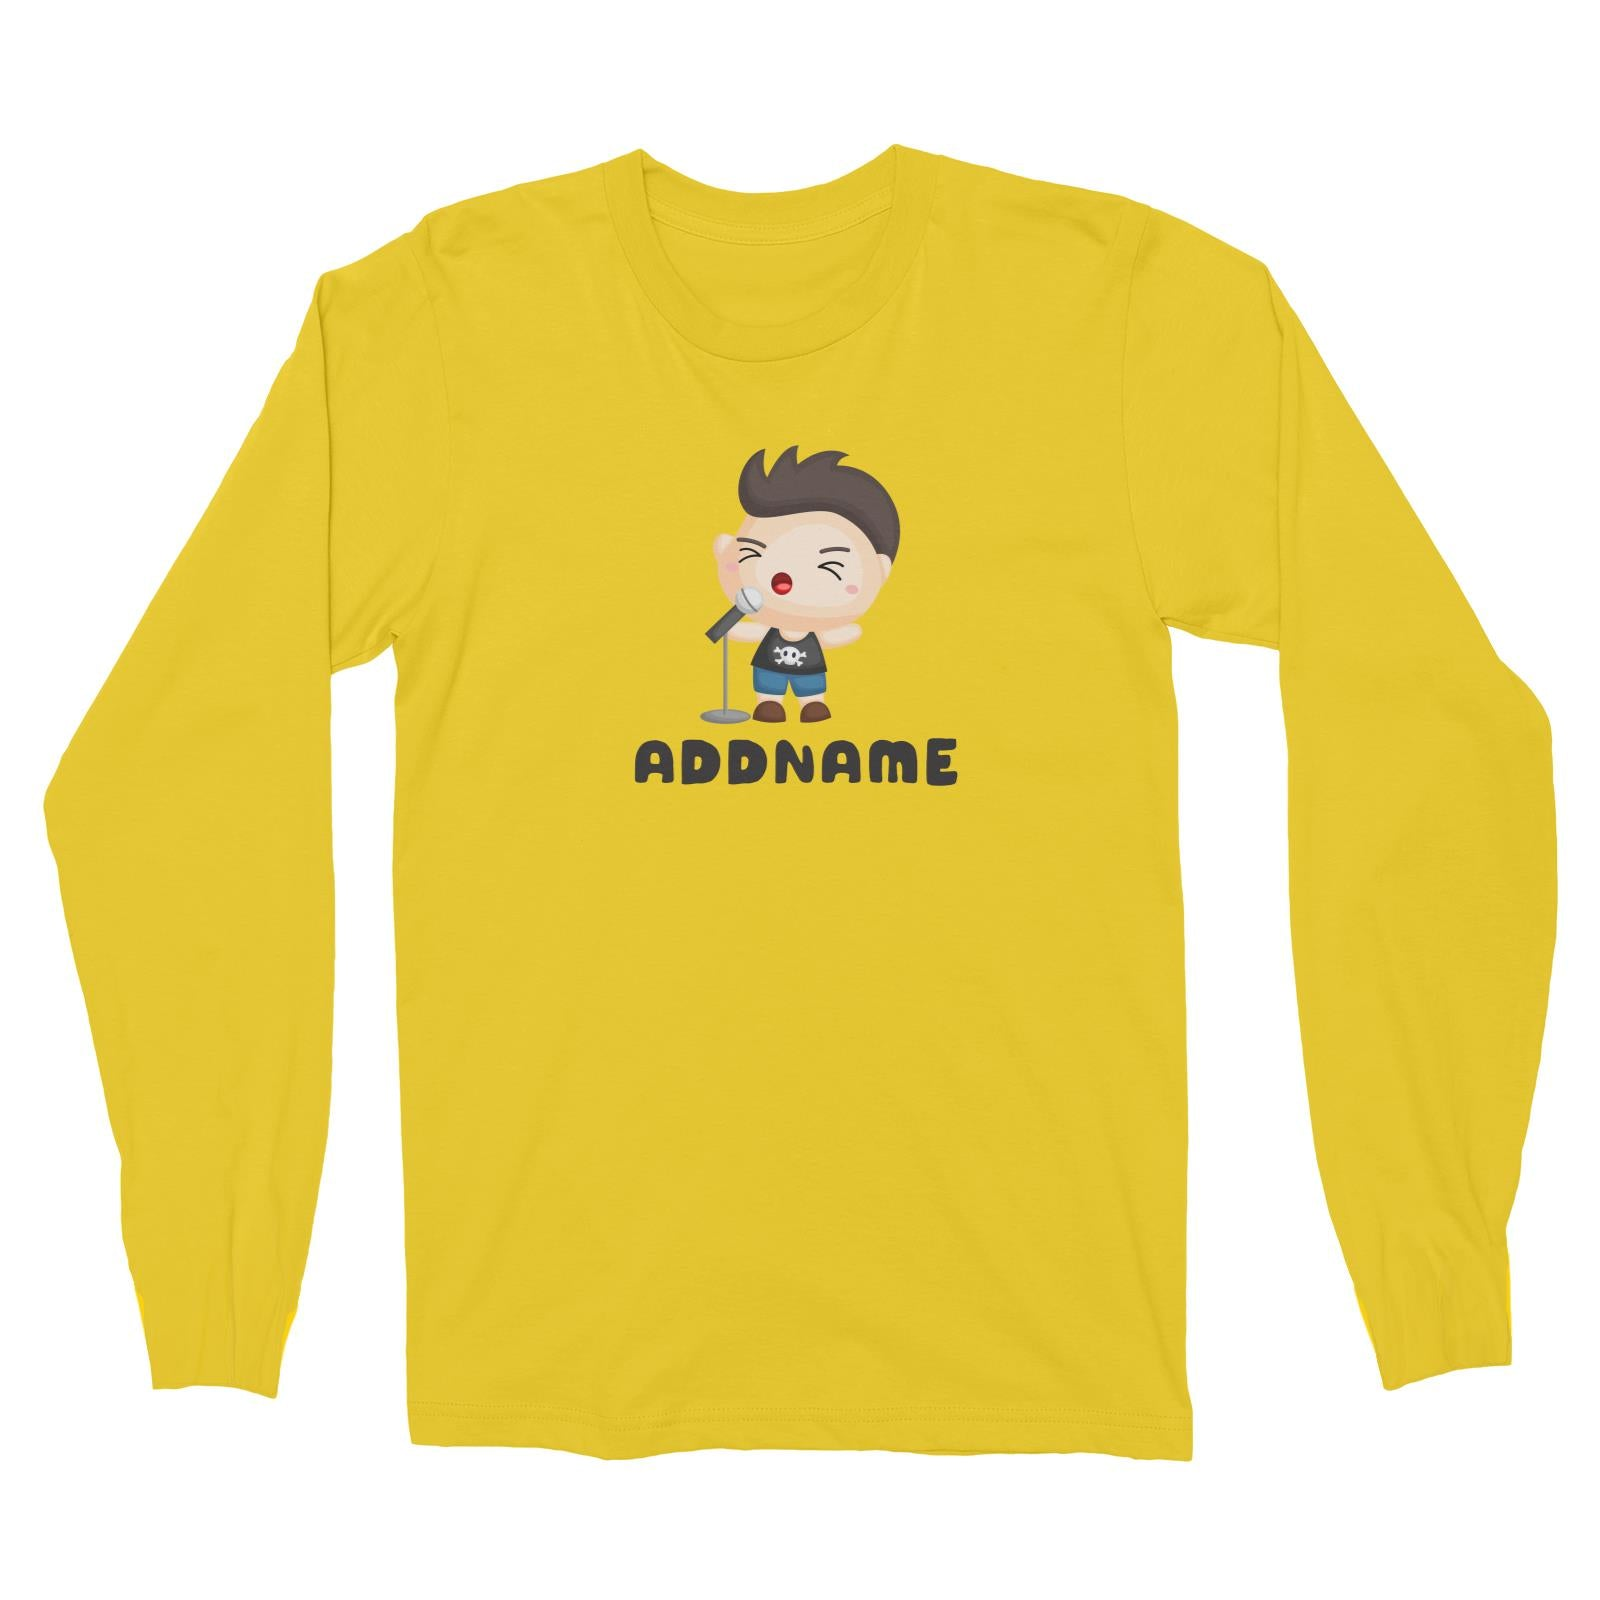 Birthday Music Band Boy Singing Mic Addname Long Sleeve Unisex T-Shirt